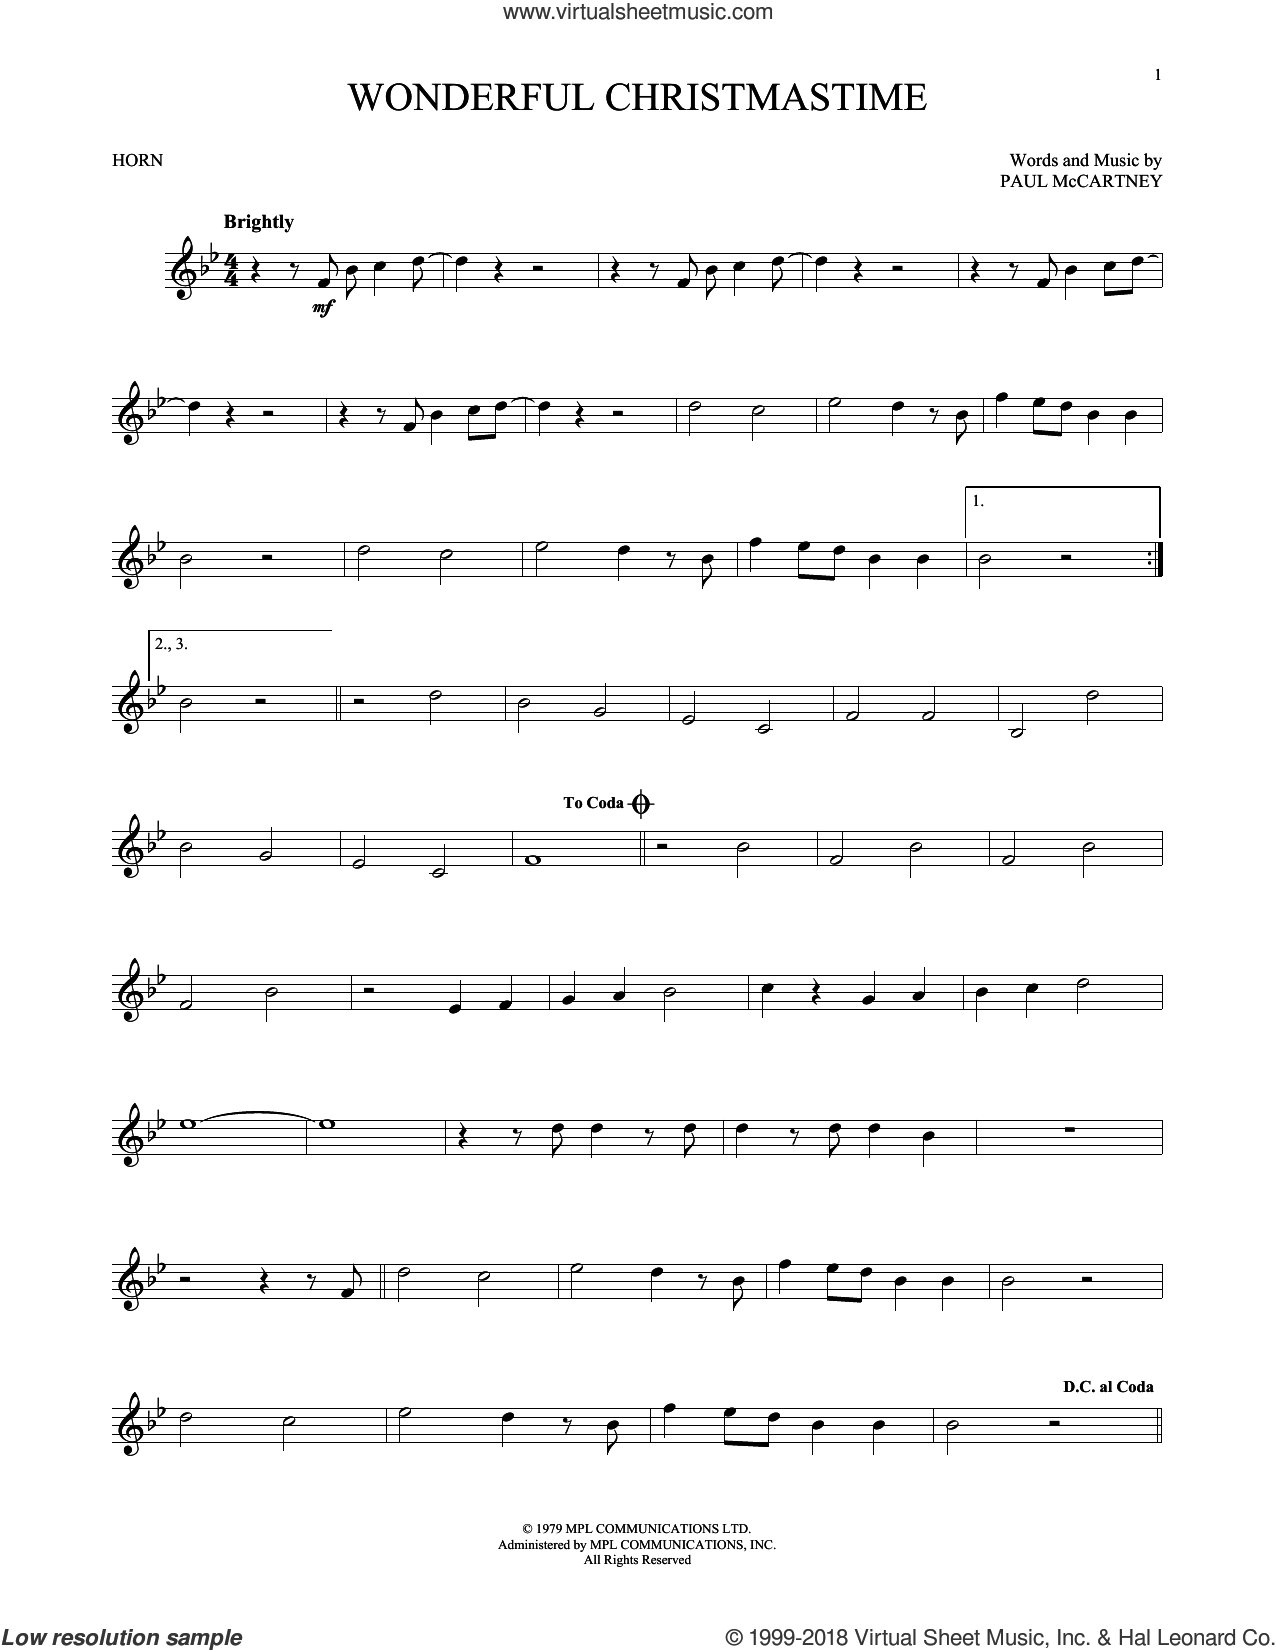 Wonderful Christmastime sheet music for horn solo by Paul McCartney, Eli Young Band and Straight No Chaser featuring Paul McCartney, intermediate skill level